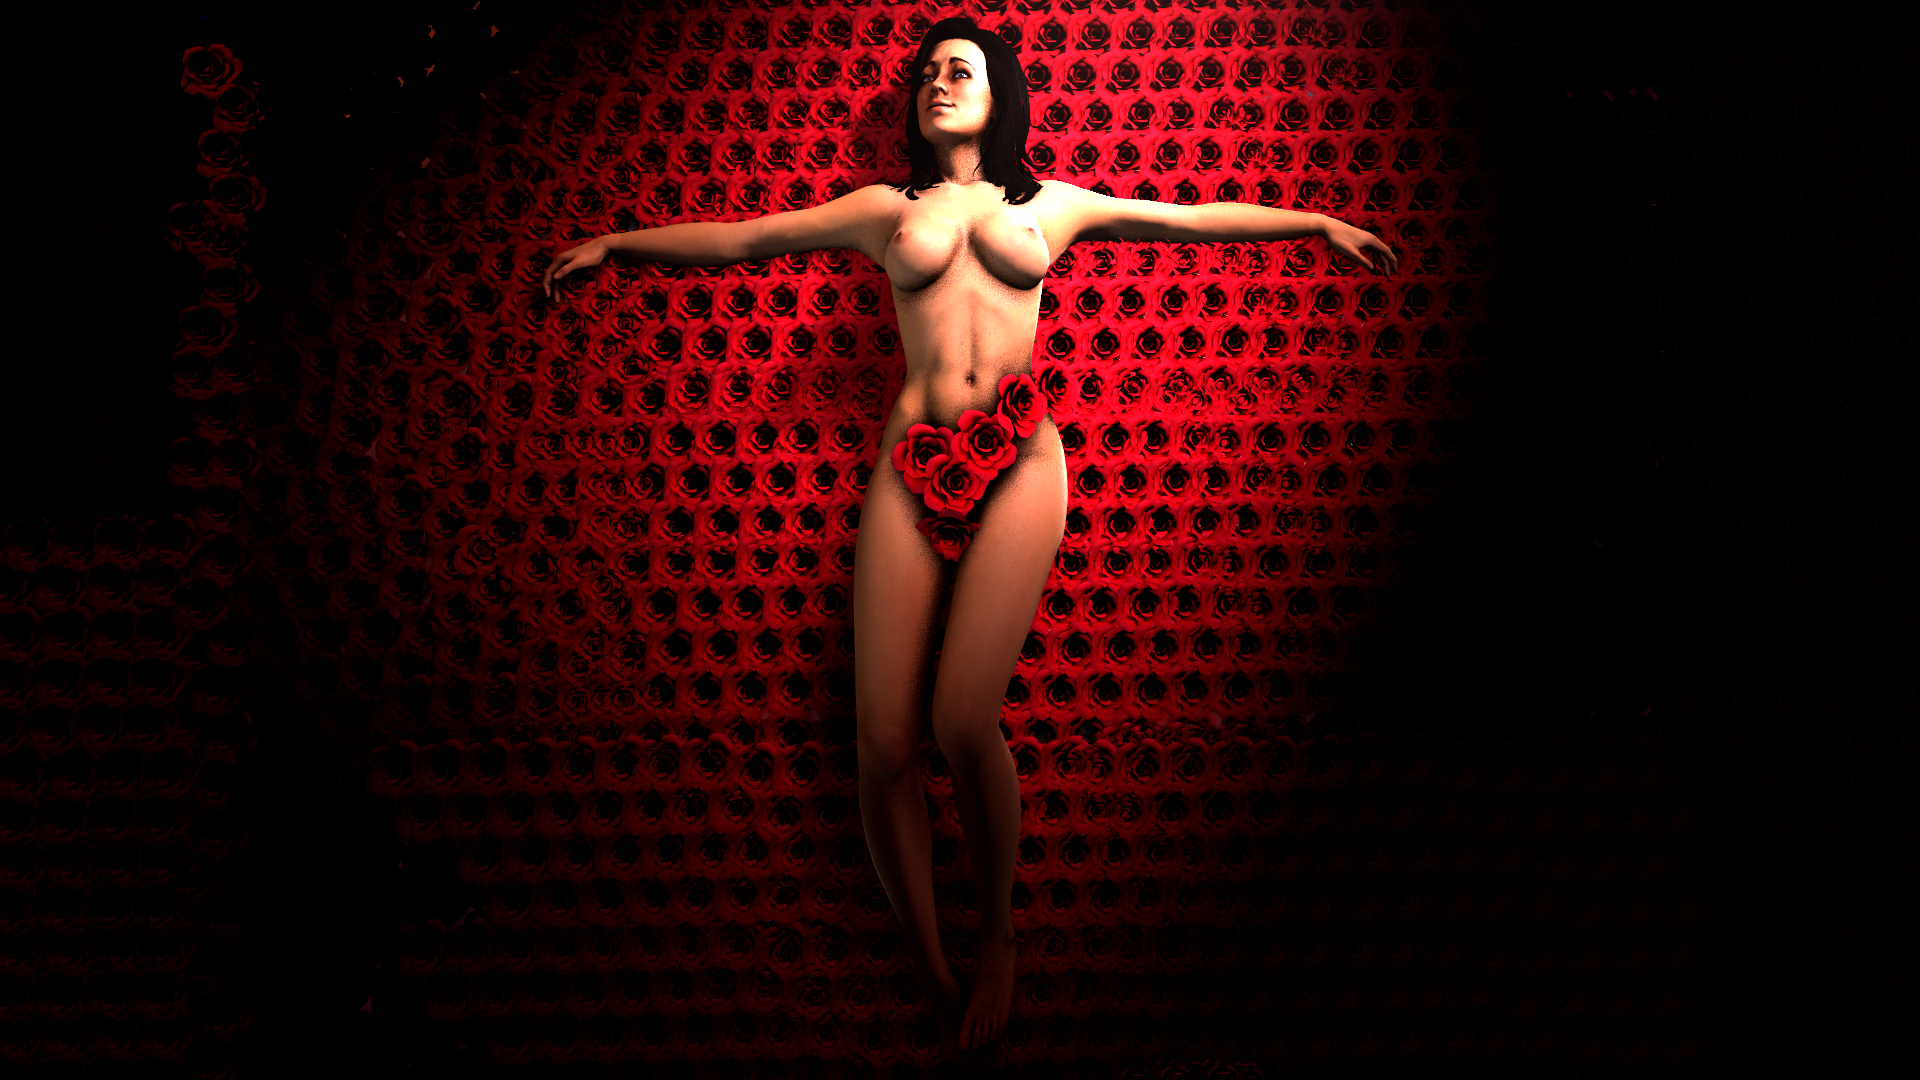 Wallpaper nude picture of mass effect naked scene